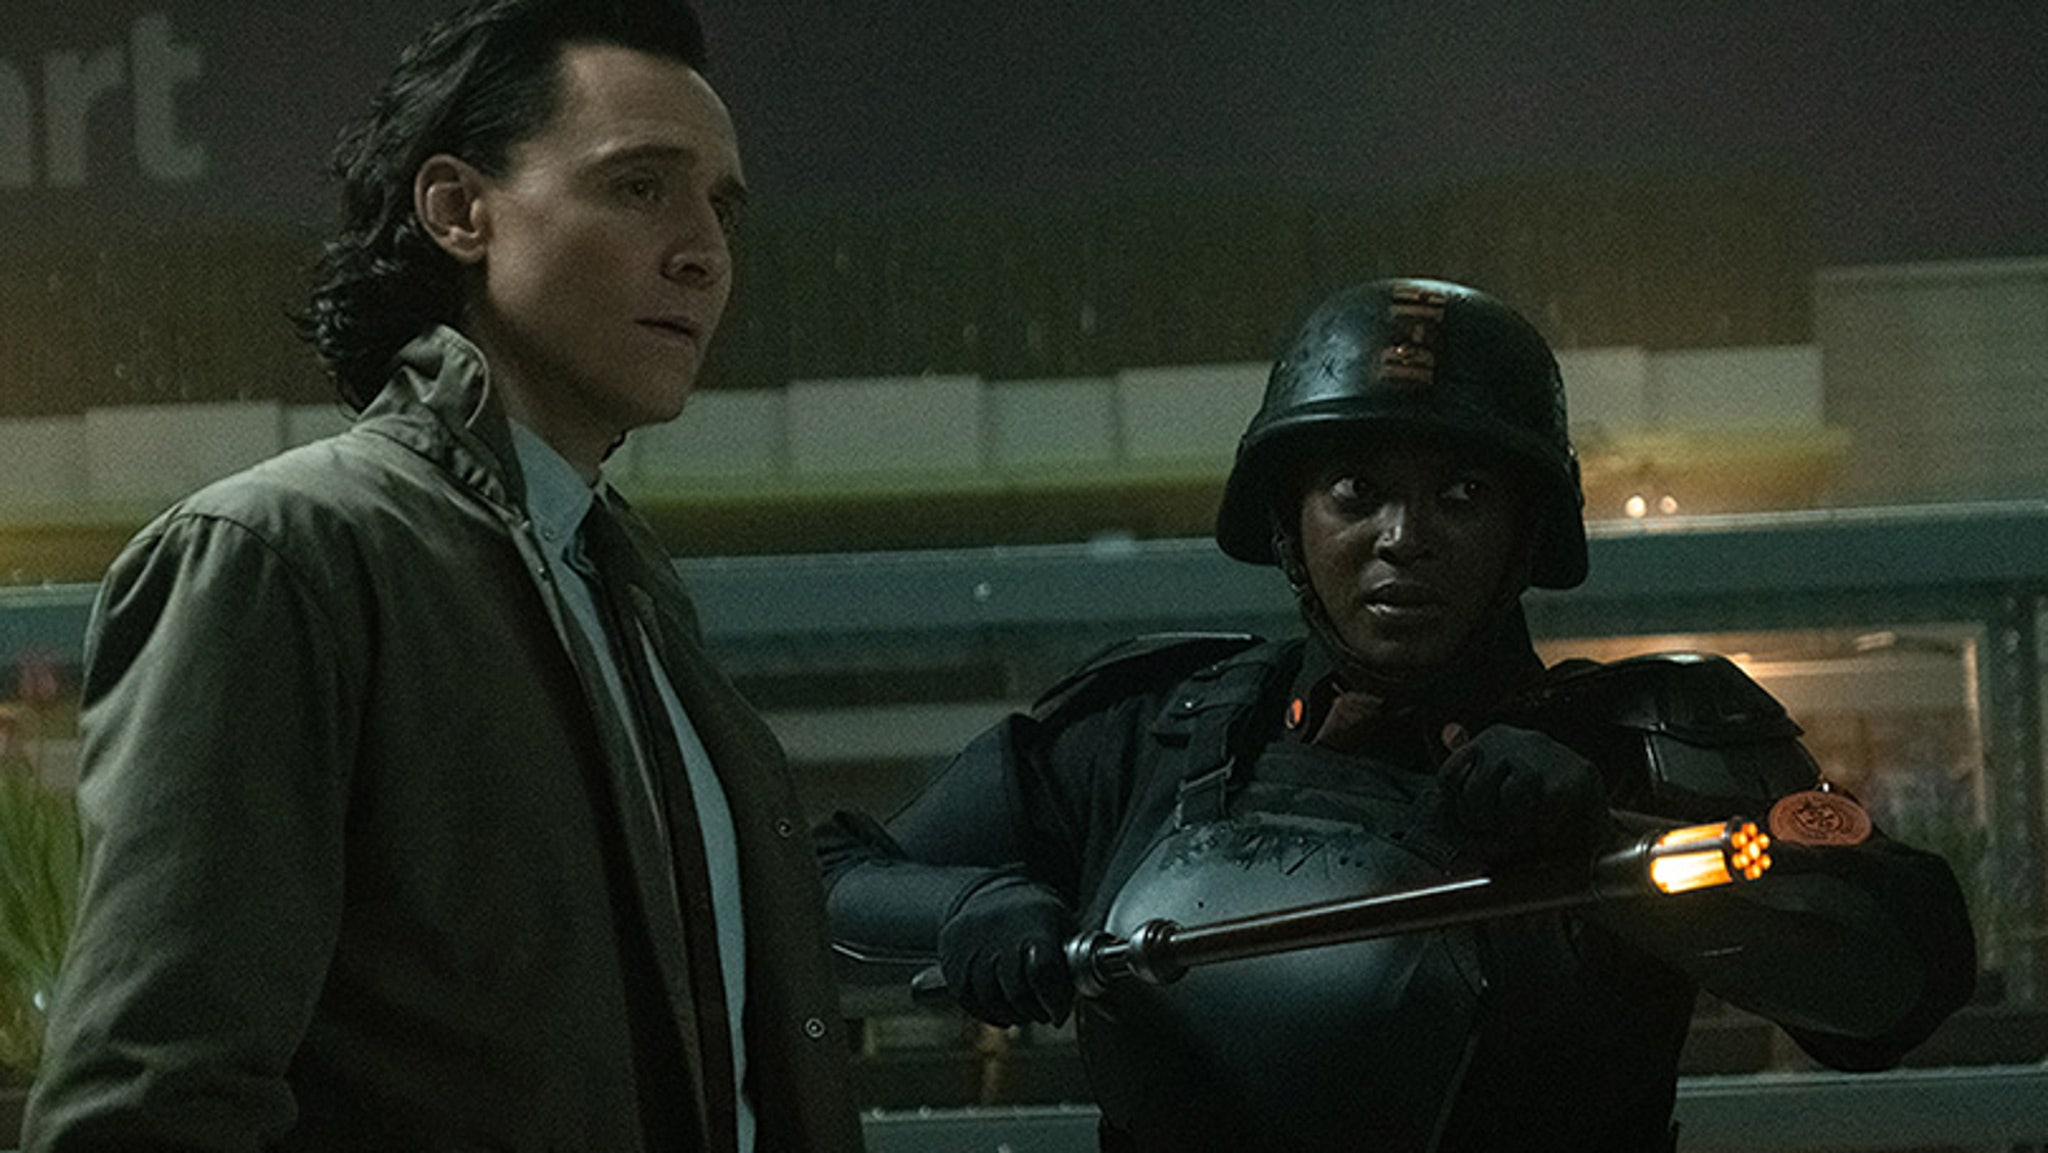 Loki finally comes face to face with his evil variant